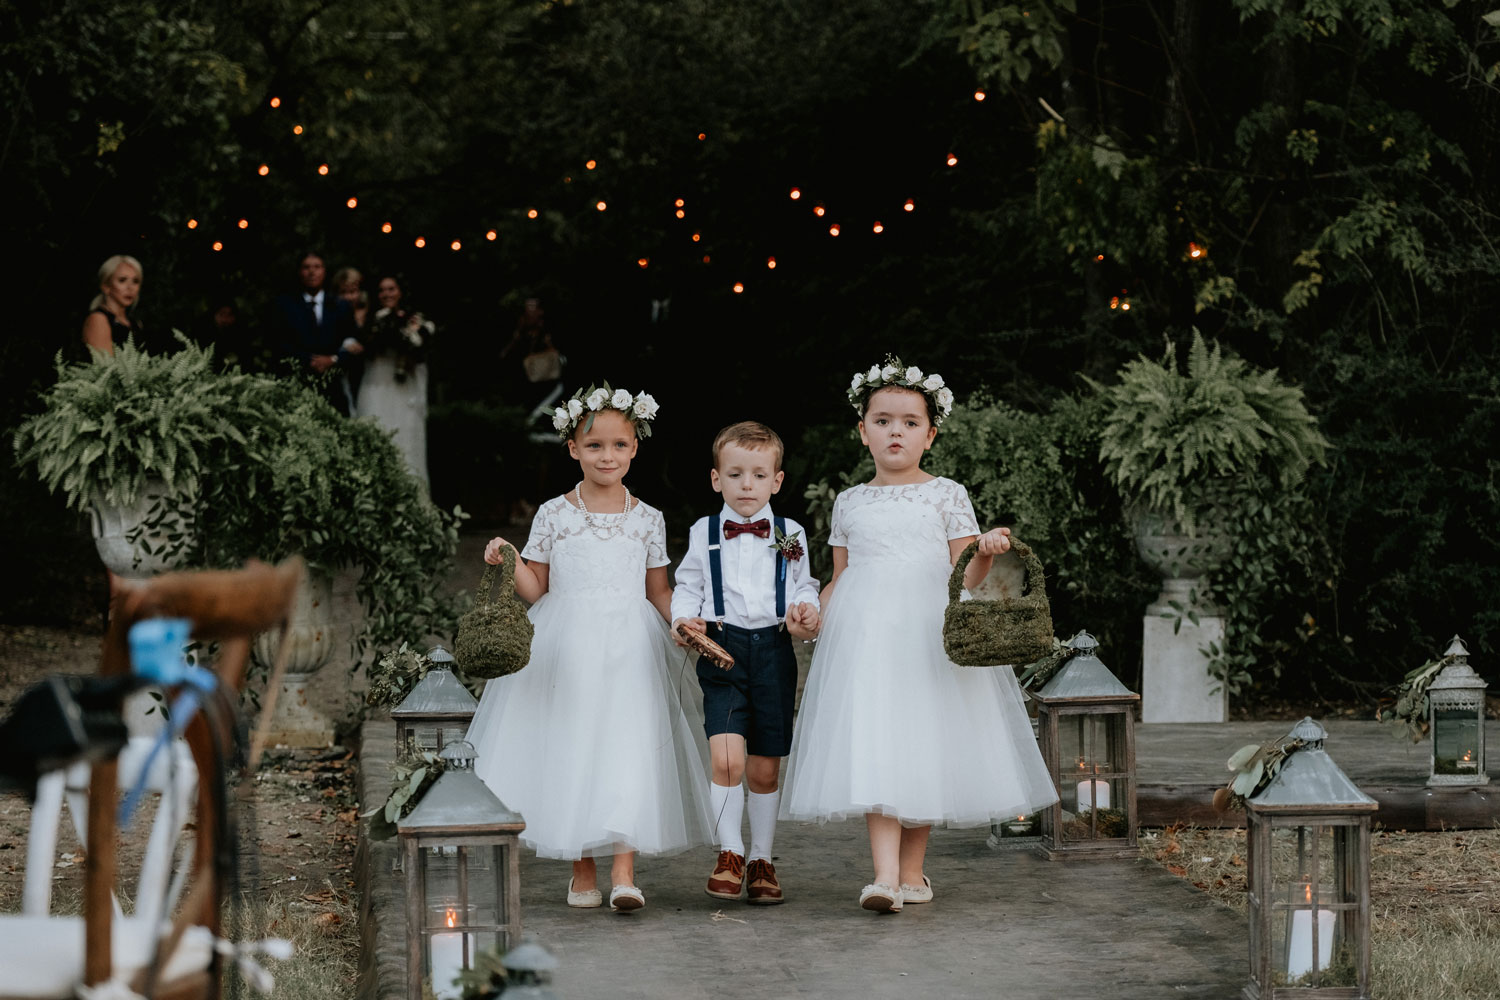 cute ring bearer in shorts suspender bow tie with flower girls in white dresses flower crowns